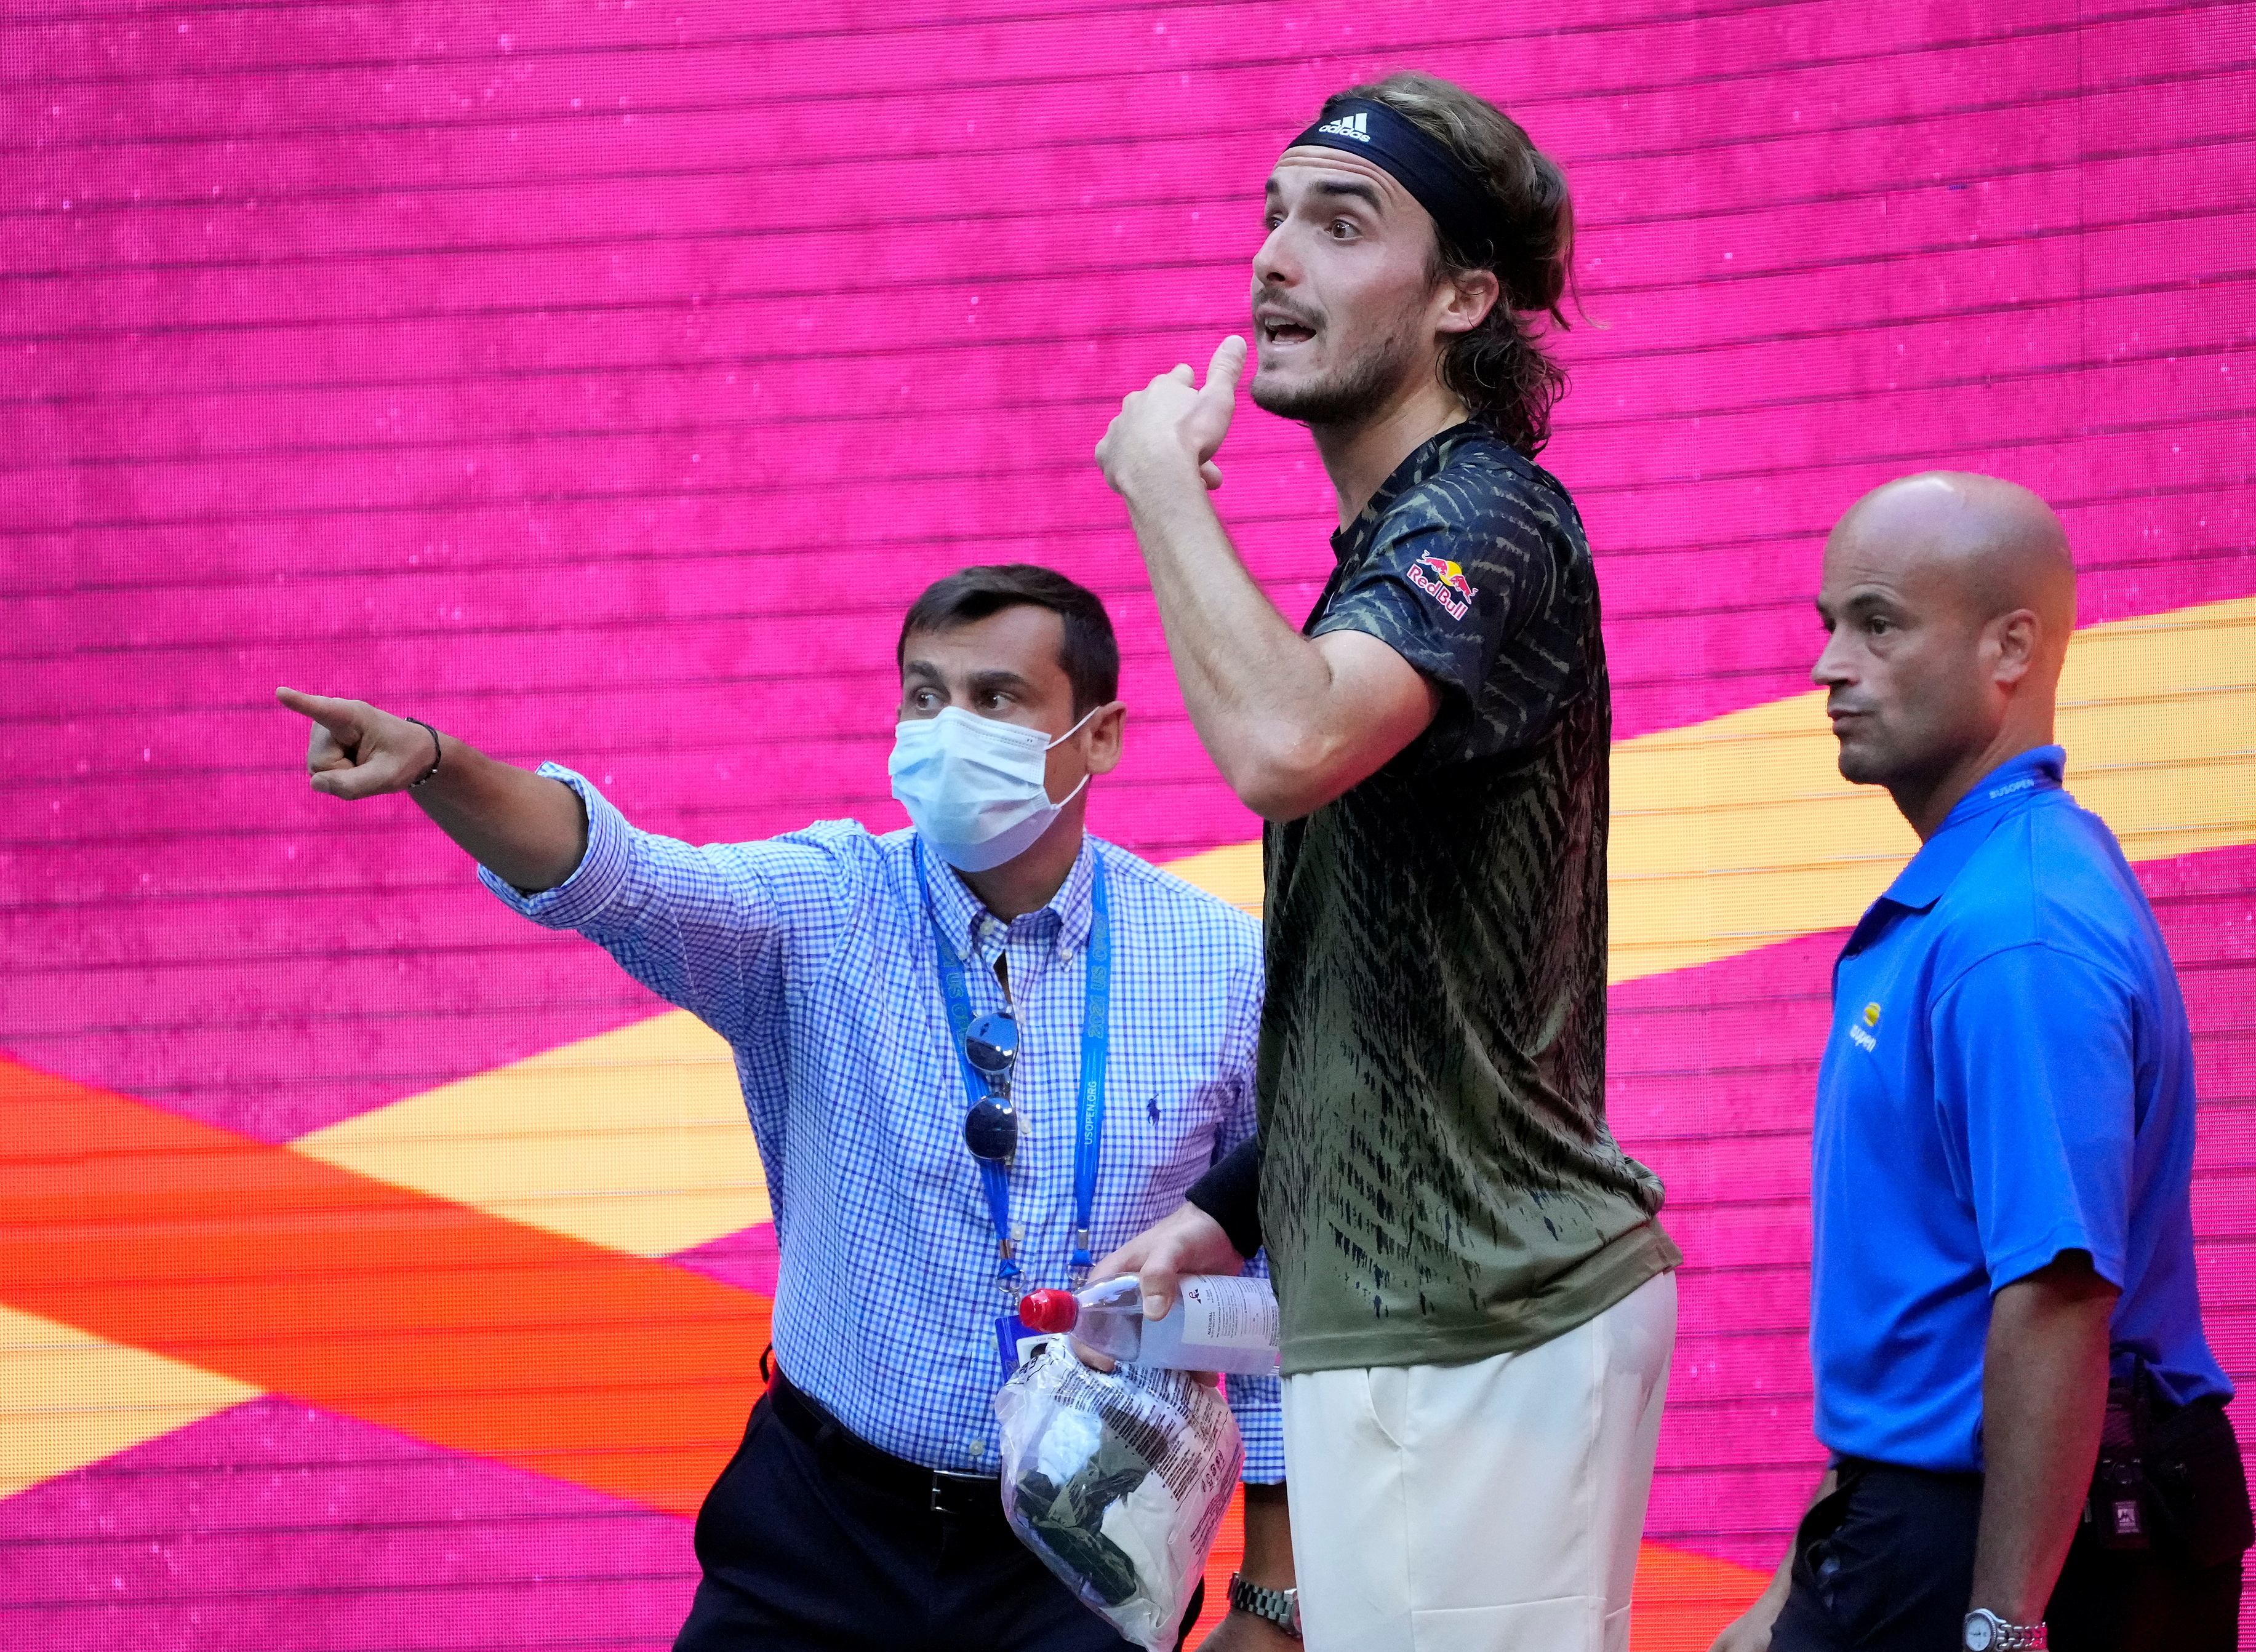 Sep 3, 2021; Flushing, NY, USA;  Stefanos Tsitsipas of Greece headed to bathroom on a break after losing the 3rd set against Carlos Alcaraz of Spain on day five of the 2021 U.S. Open tennis tournament at USTA Billie King National Tennis Center. Mandatory Credit: Robert Deutsch-USA TODAY Sports/File Photo